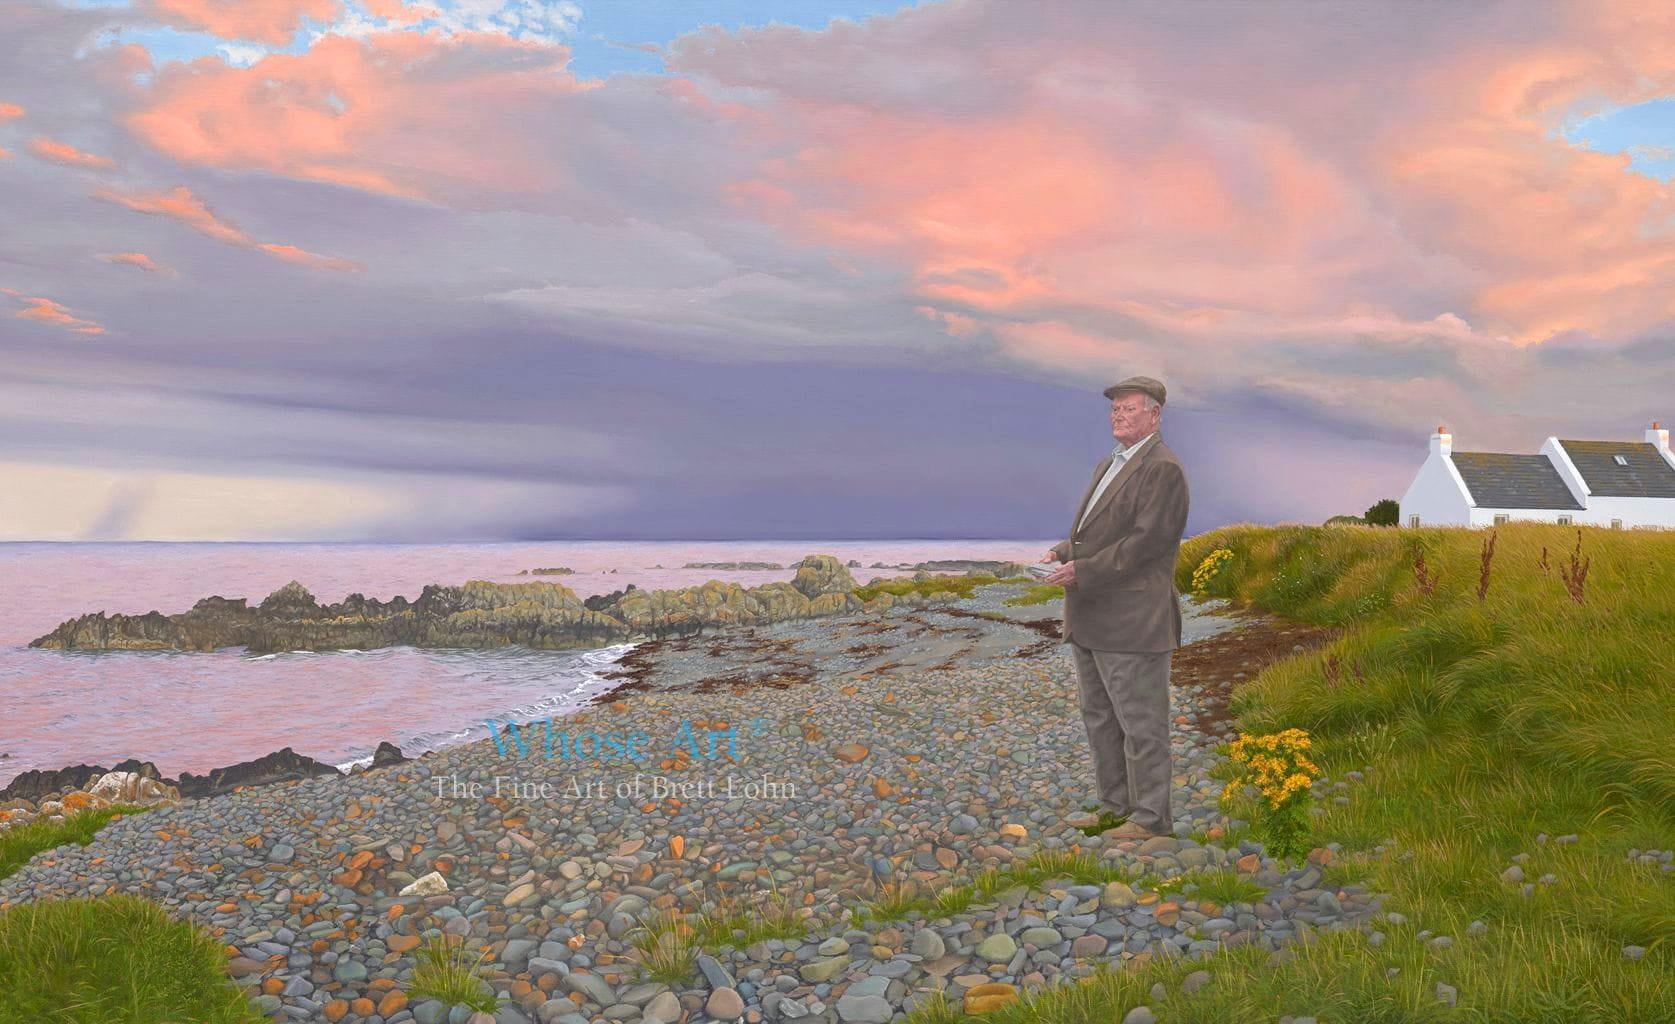 Mystic art oil painting of an elderly man on the beach, beneath a stormy sunset sky, he is holding a heavy stone